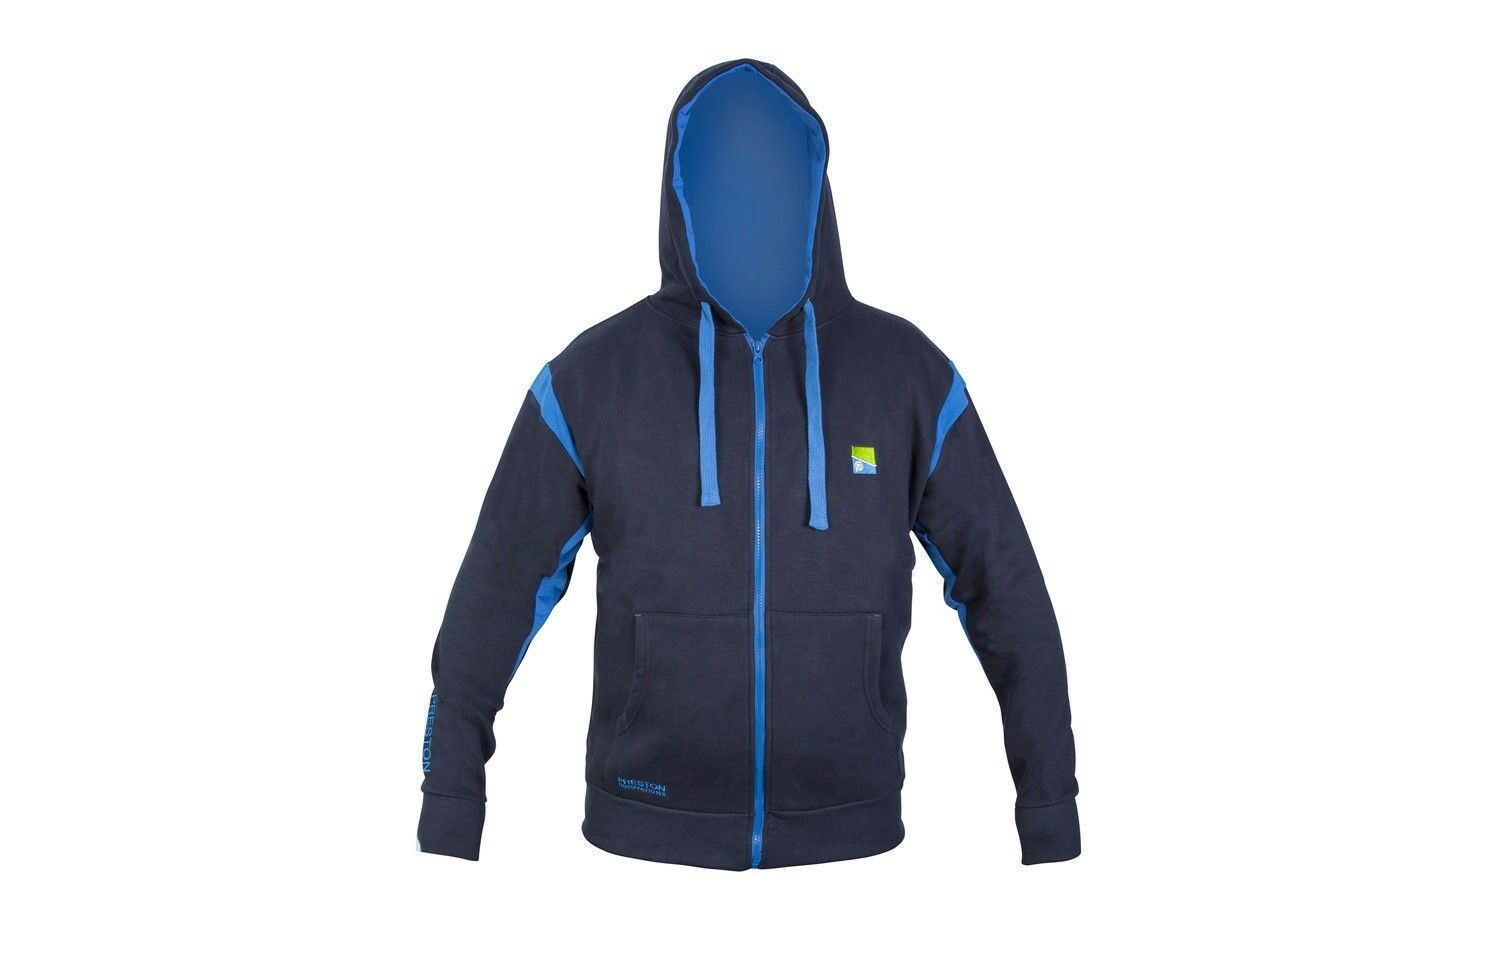 PRESTON INNOVATIONS NAVY  blueE ZIP FRONT HOODIE HOODY All Sizes  best quality